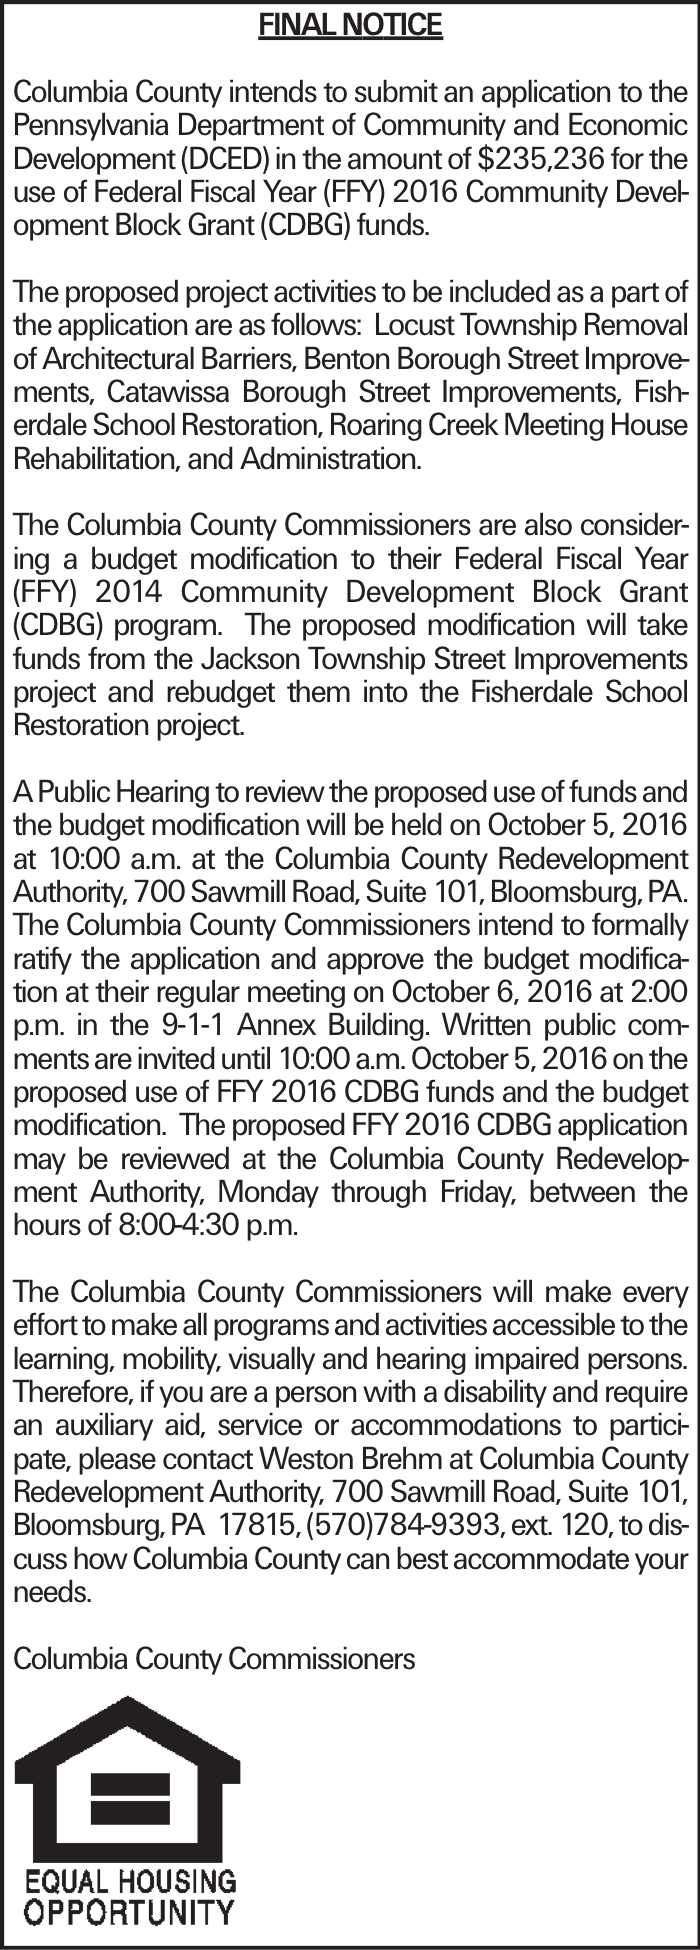 FINAL NOTICE Columbia County intends to submit an application to the Pennsylvania Department of Community and Economic Development (DCED) in the amount of $235,236 for the use of Federal Fiscal Year (FFY) 2016 Community Development Block Grant (CDBG) funds. The proposed project activities to be included as a part of the application are as follows: Locust Township Removal of Architectural Barriers, Benton Borough Street Improvements, Catawissa Borough Street Improvements, Fisherdale School Restoration, Roaring Creek Meeting House Rehabilitation, and Administration. The Columbia County Commissioners are also considering a budget modification to their Federal Fiscal Year (FFY) 2014 Community Development Block Grant (CDBG) program. The proposed modification will take funds from the Jackson Township Street Improvements project and rebudget them into the Fisherdale School Restoration project. A Public Hearing to review the proposed use of funds and the budget modification will be held on October 5, 2016 at 10:00 a.m. at the Columbia County Redevelopment Authority, 700 Sawmill Road, Suite 101, Bloomsburg, PA. The Columbia County Commissioners intend to formally ratify the application and approve the budget modification at their regular meeting on October 6, 2016 at 2:00 p.m. in the 9-1-1 Annex Building. Written public comments are invited until 10:00 a.m. October 5, 2016 on the proposed use of FFY 2016 CDBG funds and the budget modification. The proposed FFY 2016 CDBG application may be reviewed at the Columbia County Redevelopment Authority, Monday through Friday, between the hours of 8:00-4:30 p.m. The Columbia County Commissioners will make every effort to make all programs and activities accessible to the learning, mobility, visually and hearing impaired persons. Therefore, if you are a person with a disability and require an auxiliary aid, service or accommodations to participate, please contact Weston Brehm at Columbia County Redevelopment Authority, 700 Sawmill Road, Suite 101, Bloomsburg, PA 17815, (570)784-9393, ext. 120, to discuss how Columbia County can best accommodate your needs. Columbia County Commissioners